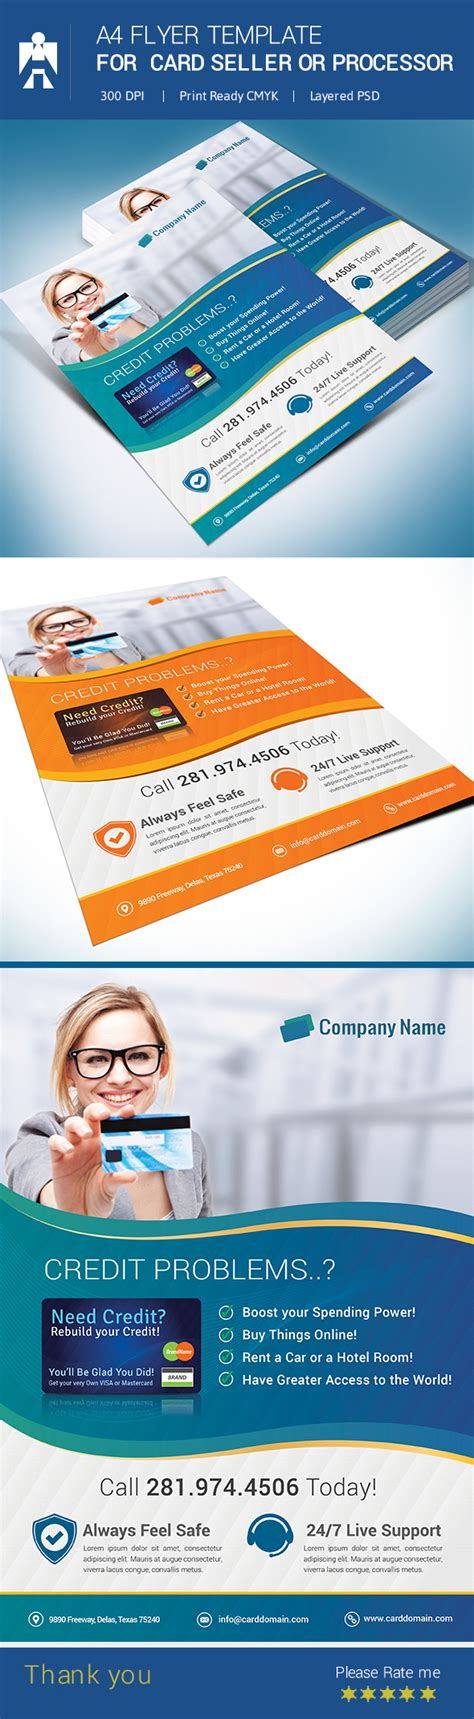 Debit Card Template To Understand by A4 Flyer Template For Debit Card Or Credit Card Seller On